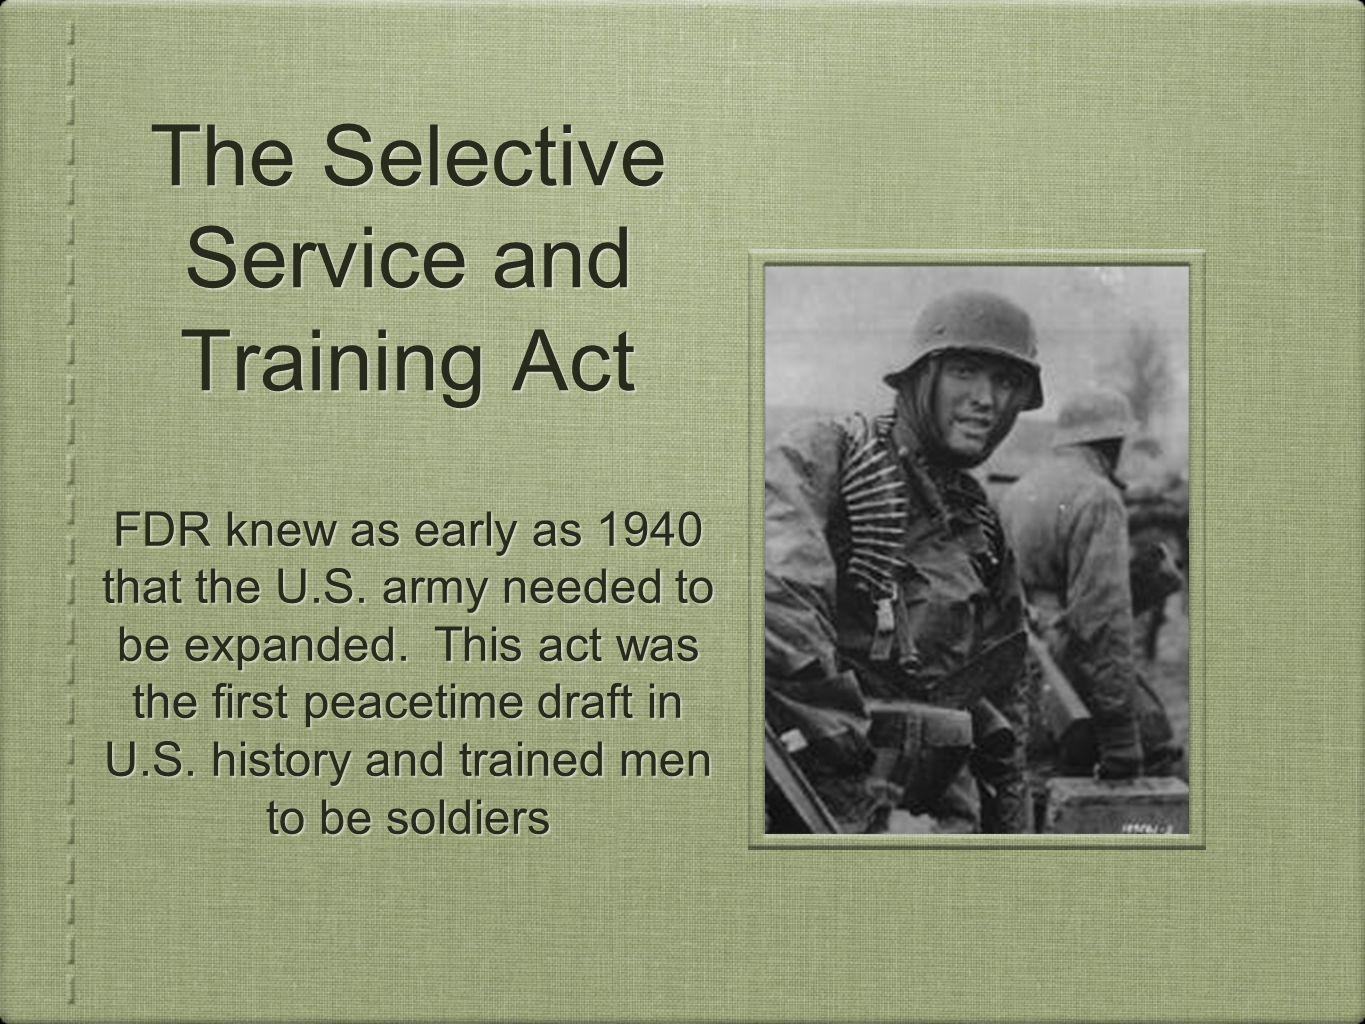 The Selective Service and Training Act FDR knew as early as 1940 that the U.S. army needed to be expanded. This act was the first peacetime draft in U